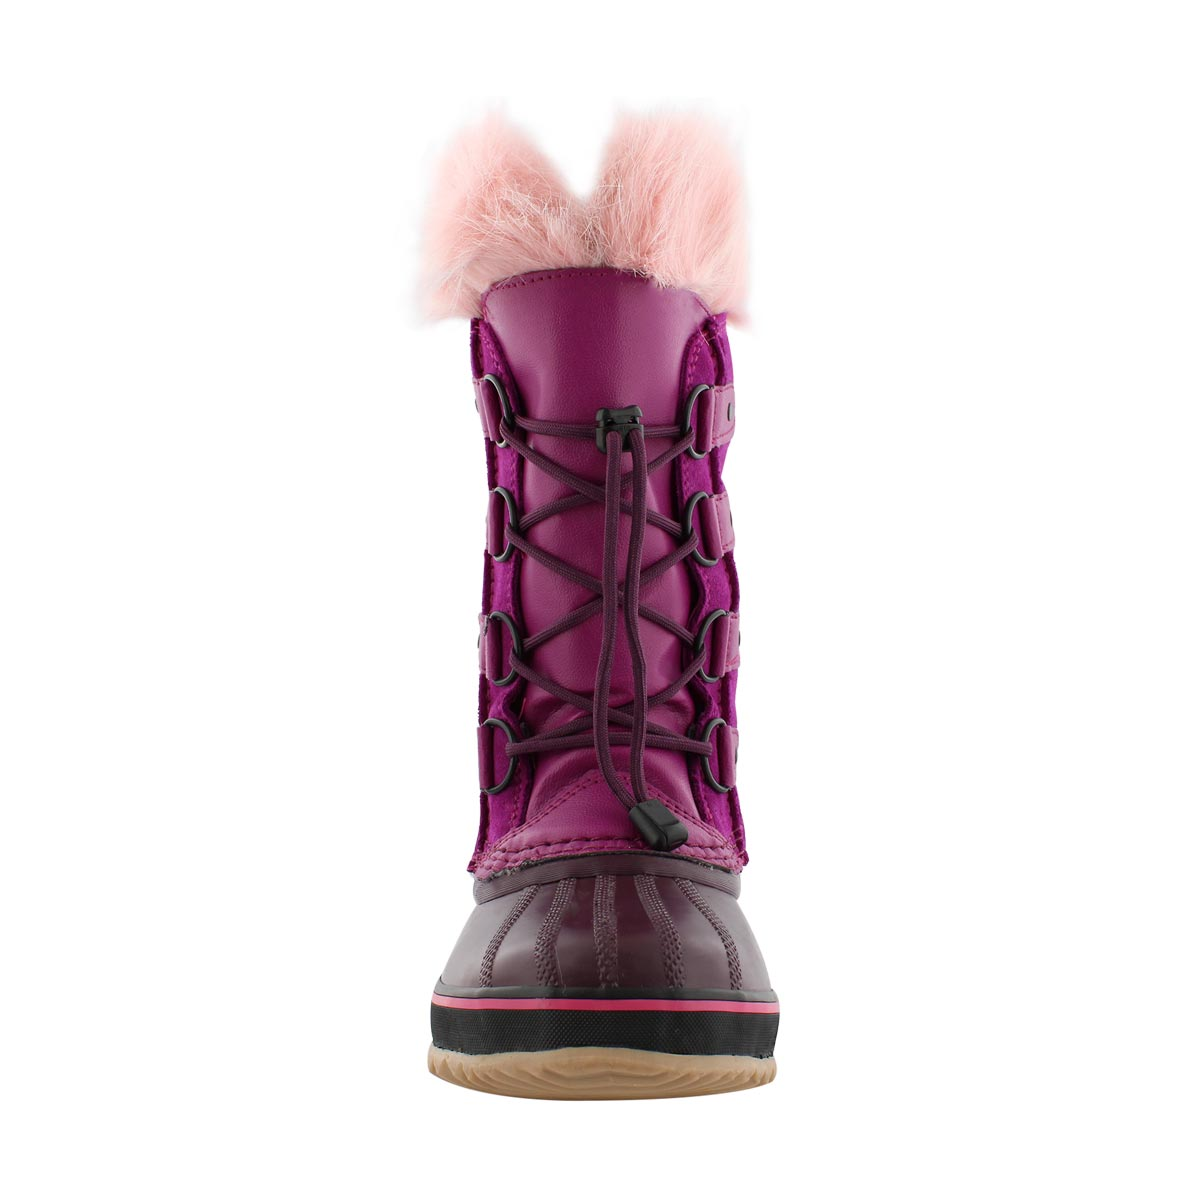 Grls Joan Of Arctic rspbry/pur wntr boot